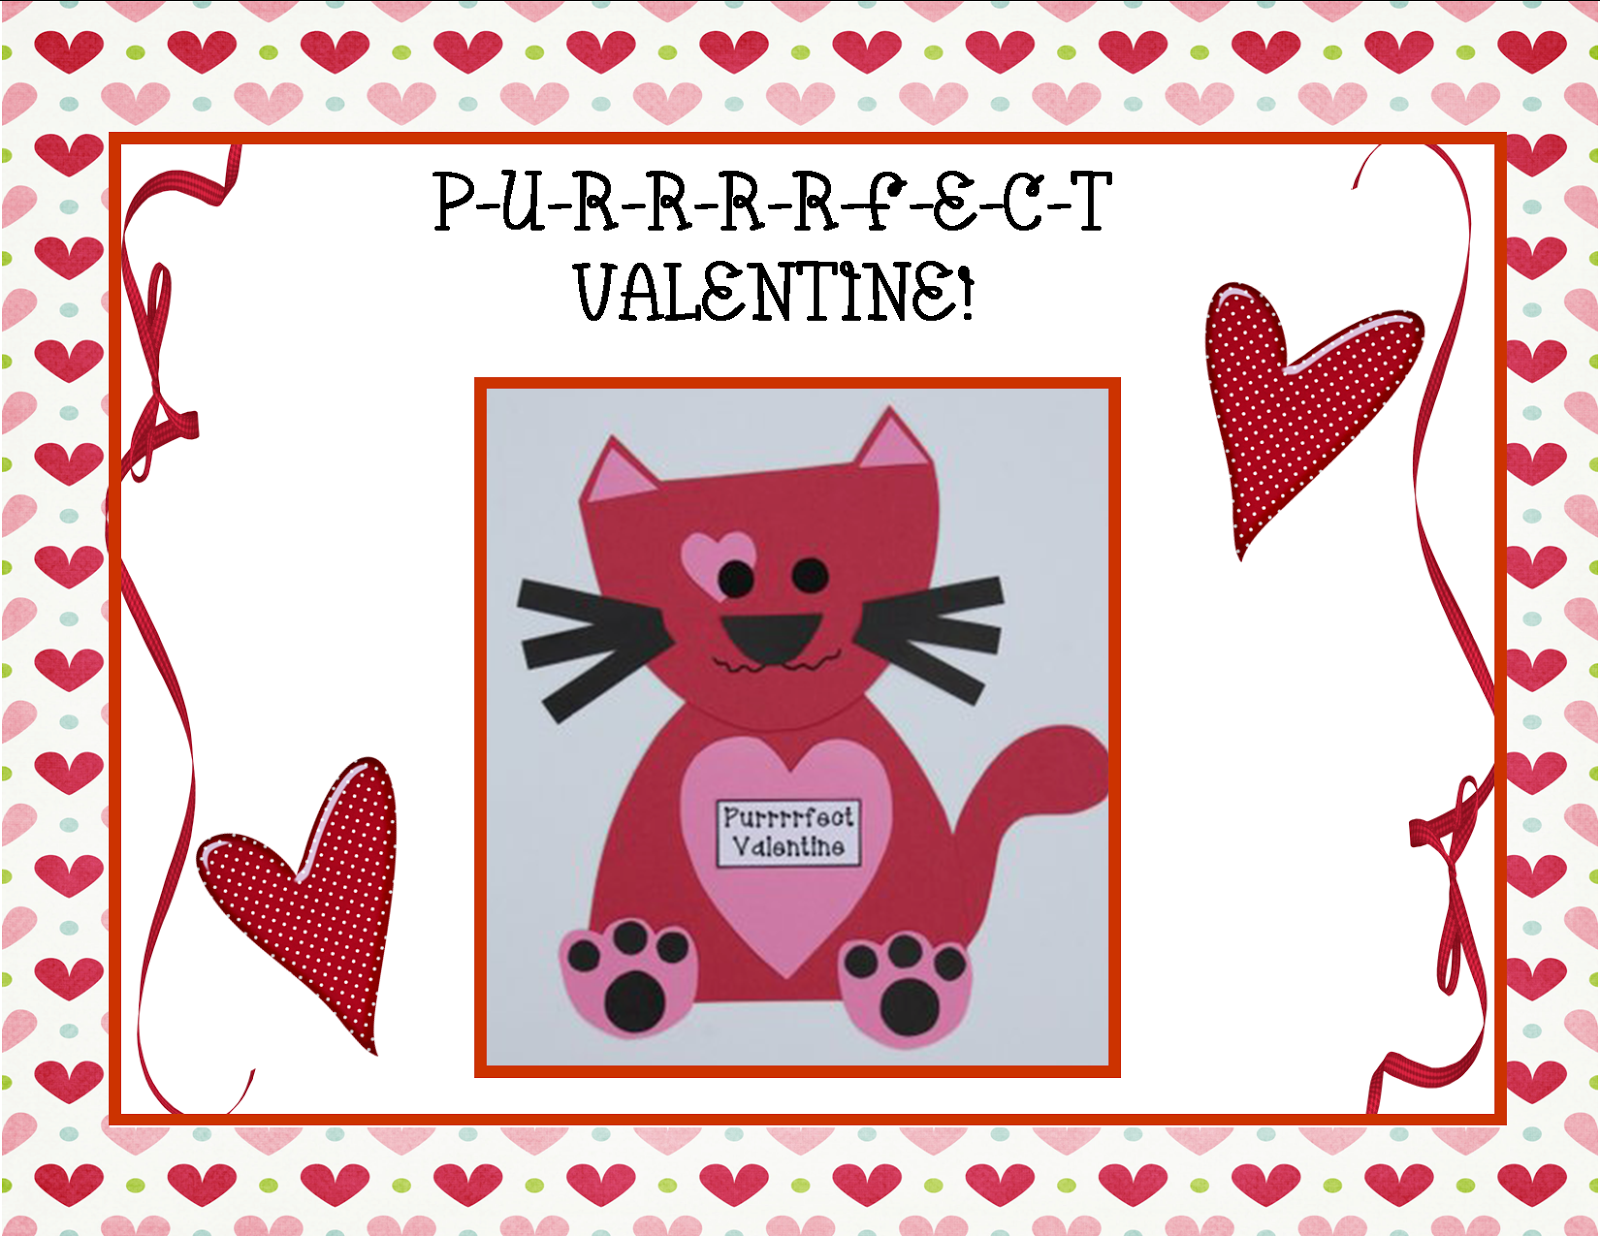 http://www.teacherspayteachers.com/Product/Purrrrfect-Valentine-Craft-Kitty-and-Literacy-Activities-520043